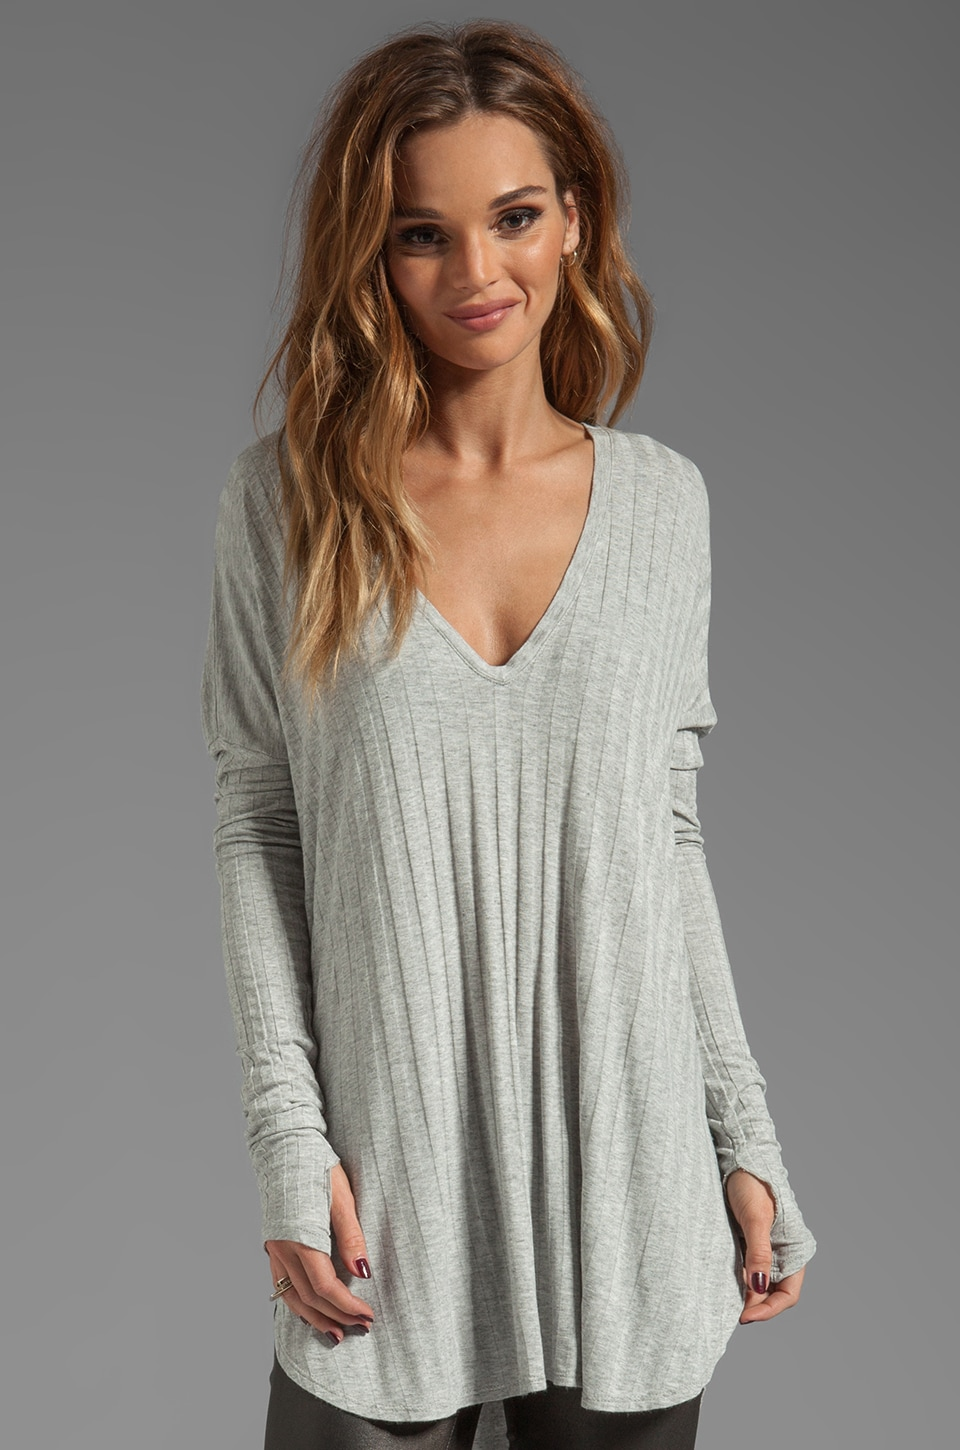 Feel the Piece Robin Top in Heather Grey